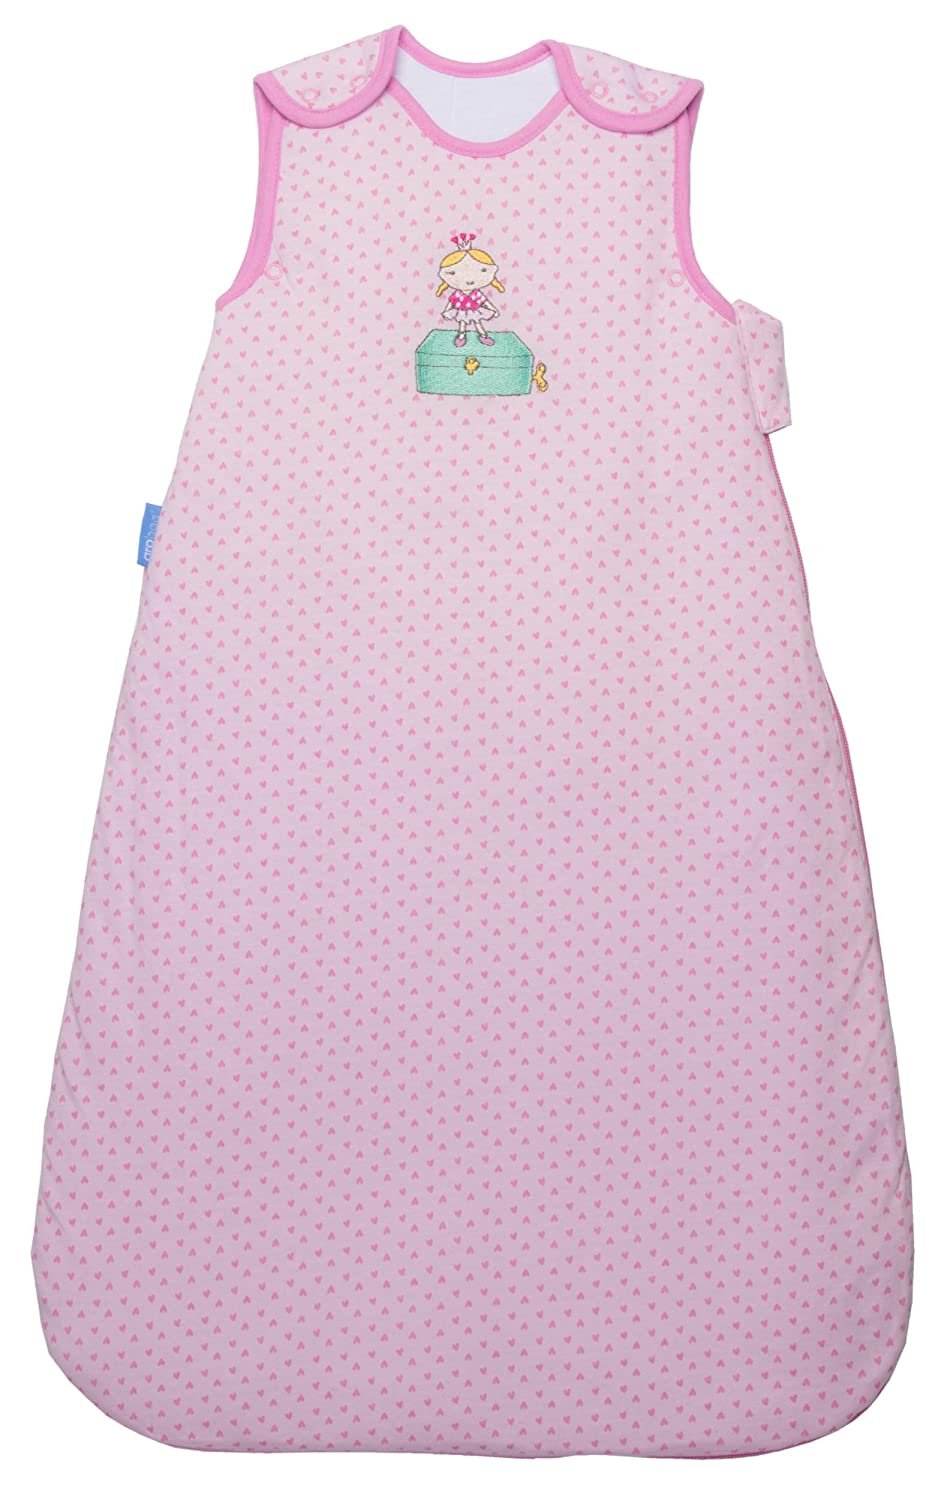 Grobag Ballerina Baby Girl Pink Sleeping Bag - 2.5 Tog -Available in Size 6-18 Months - Simply Grobag Range - Clear Packaging 5055653759176